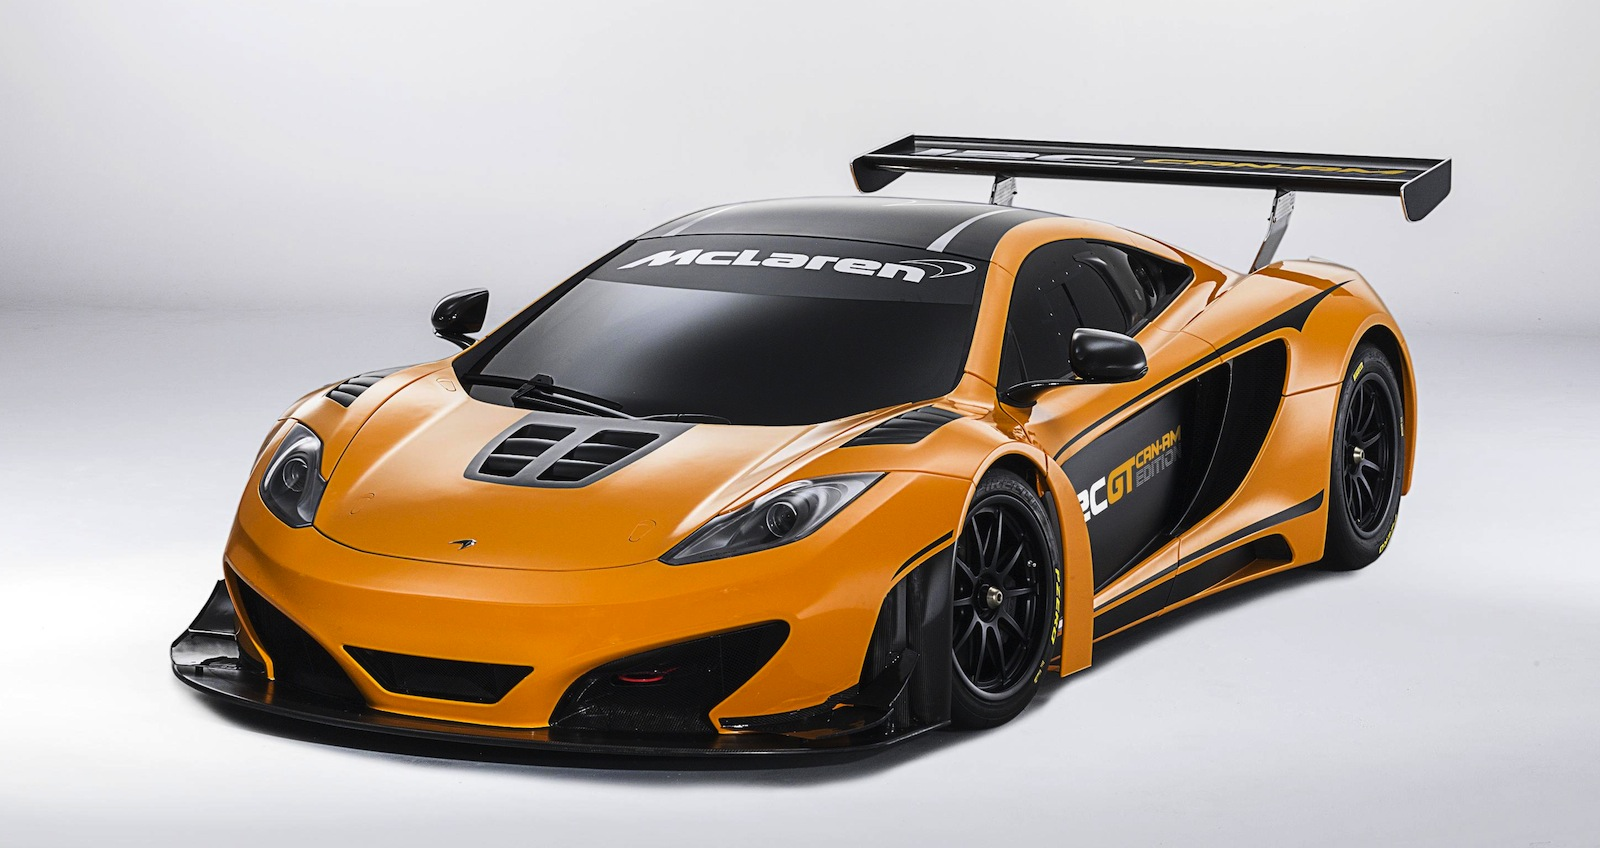 mclaren mp4 12c gt can am edition to enter production photos 1 of 6. Black Bedroom Furniture Sets. Home Design Ideas